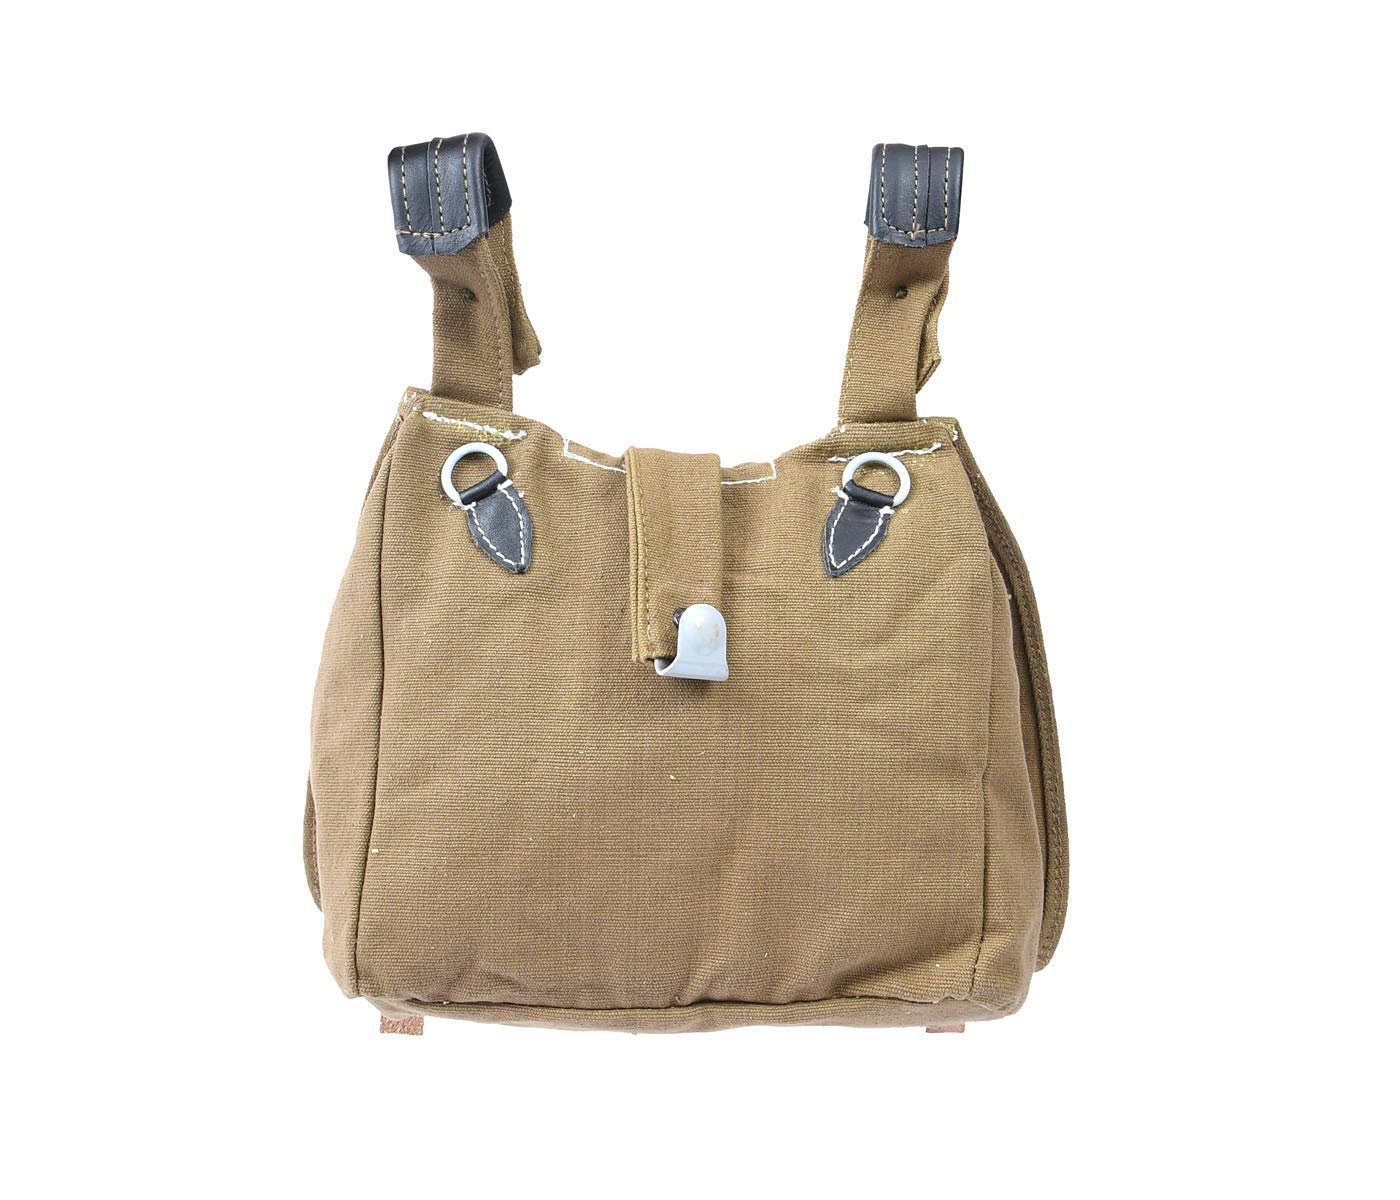 World War Replica German WWII M31 Bread Bag with Carry Strap